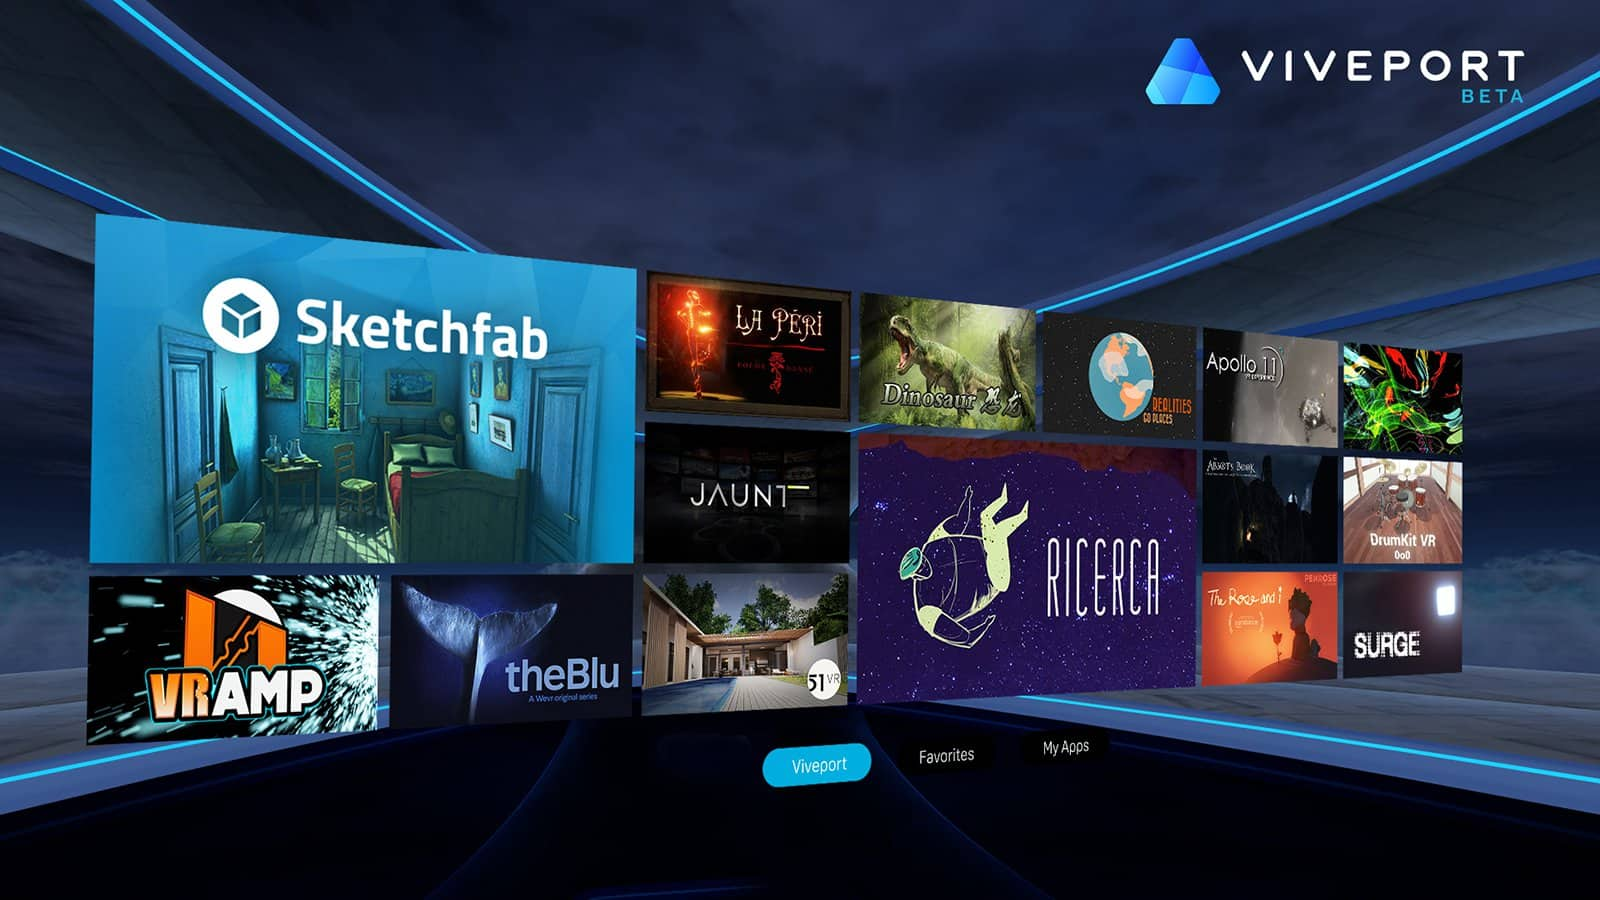 Viveport the New VR Content Store for HTC Vive